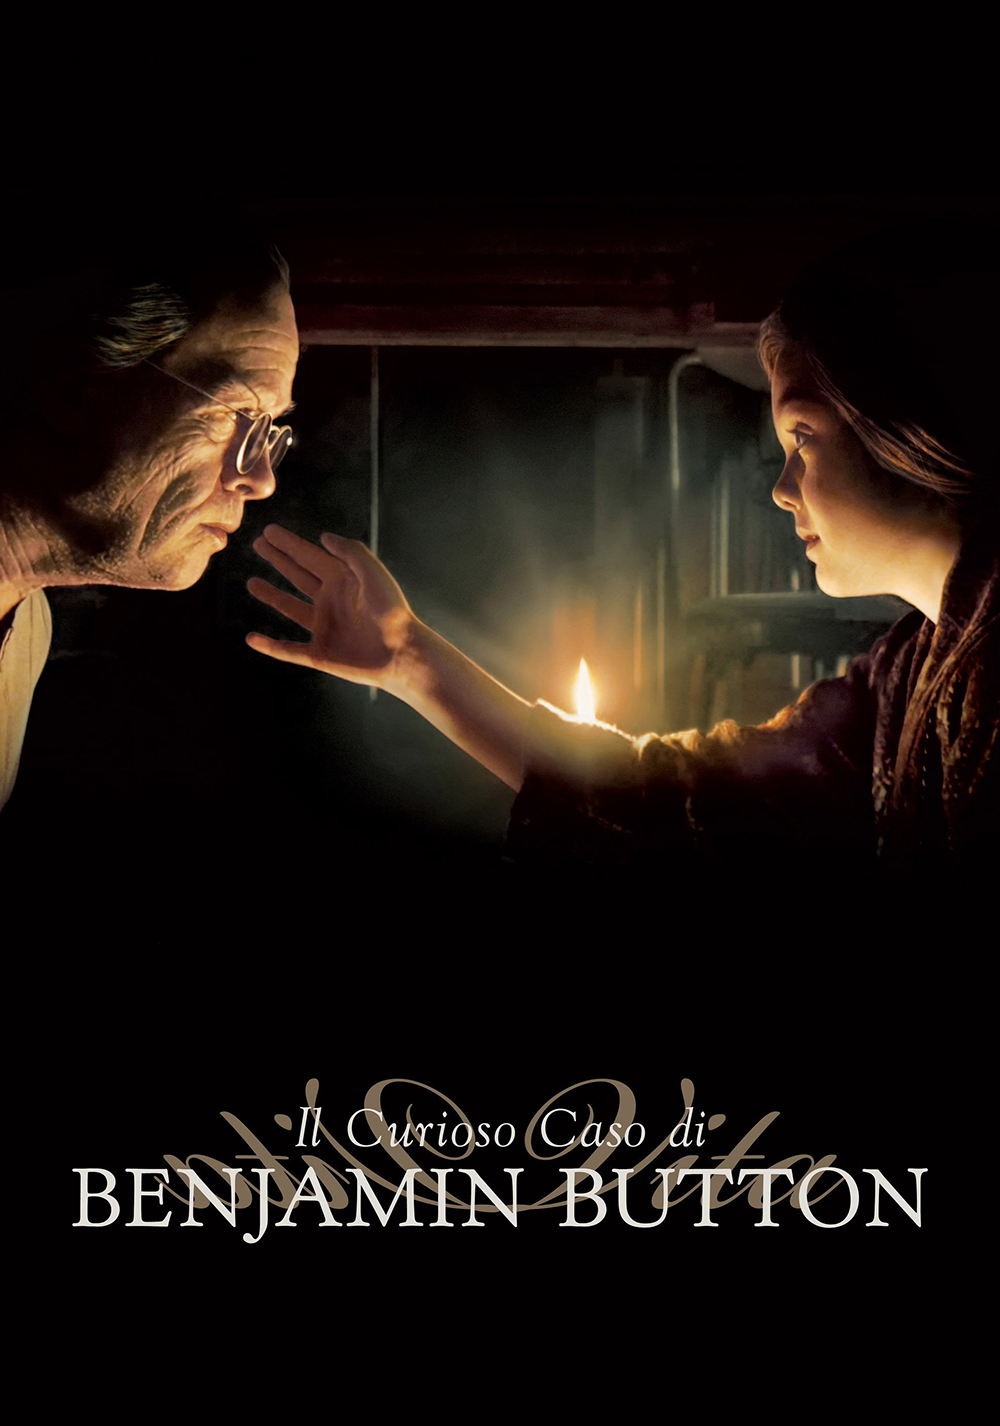 The benjamin movie